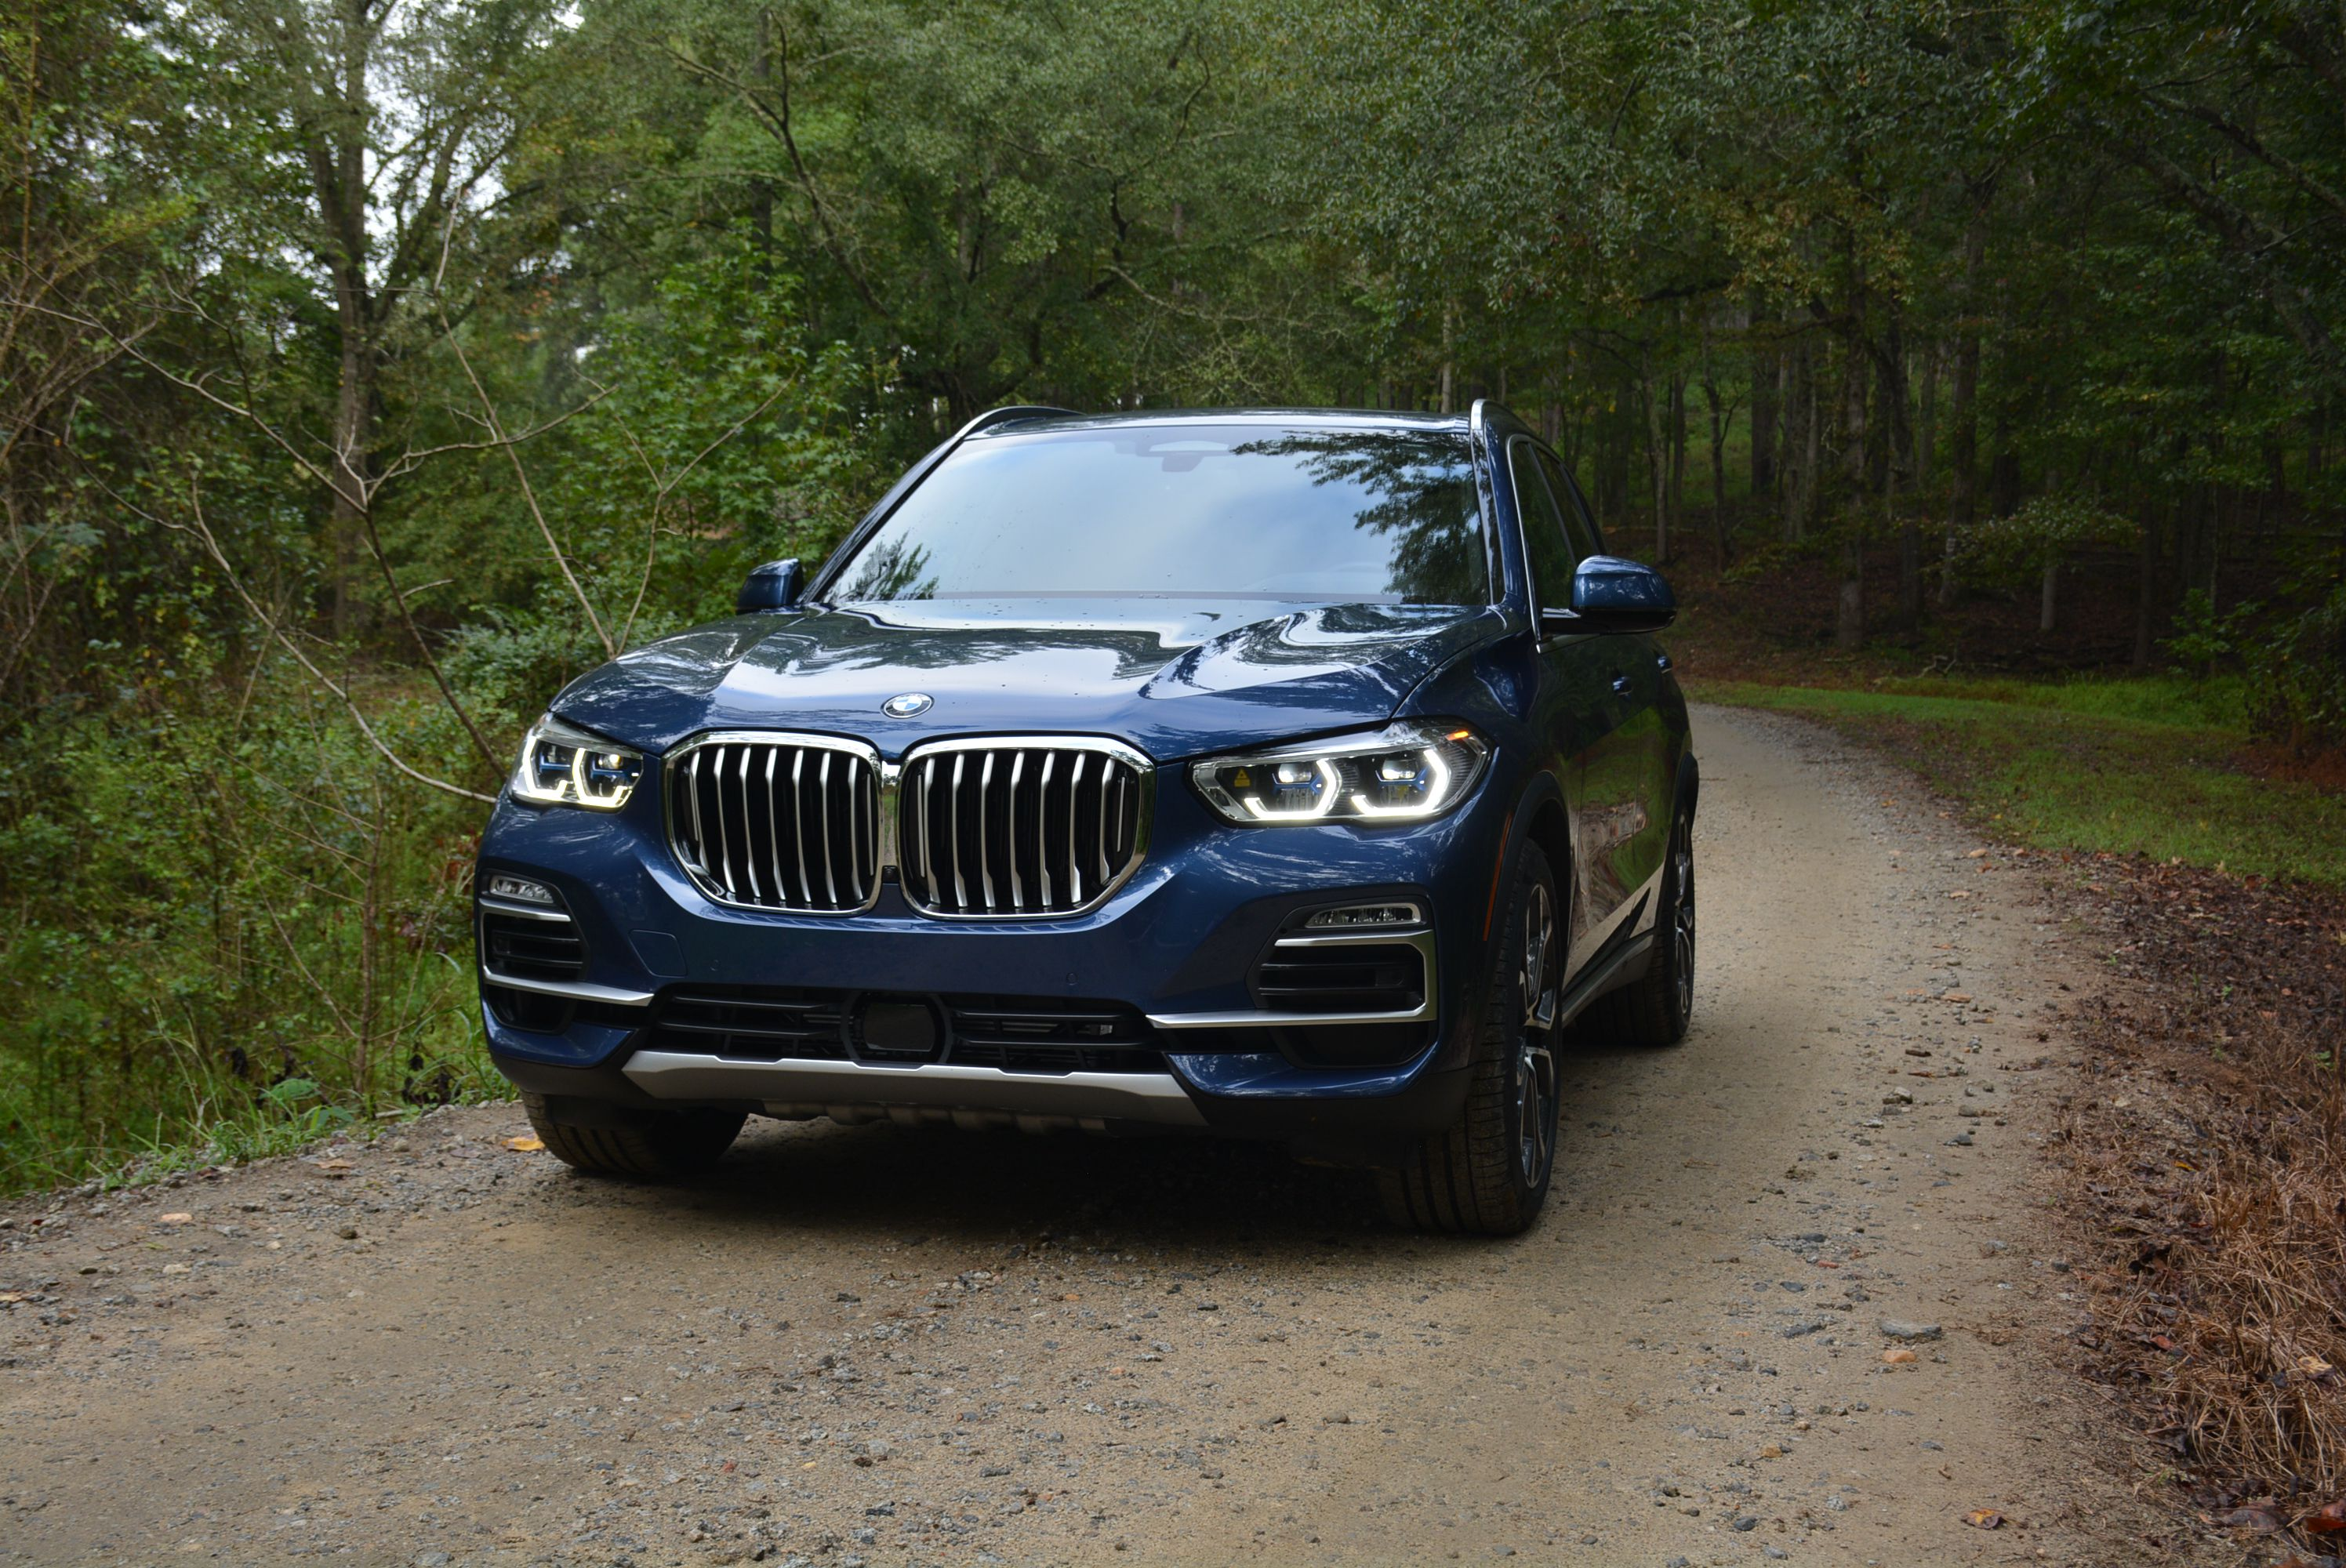 Review: BMW's latest X5 gives rivals all they can handle